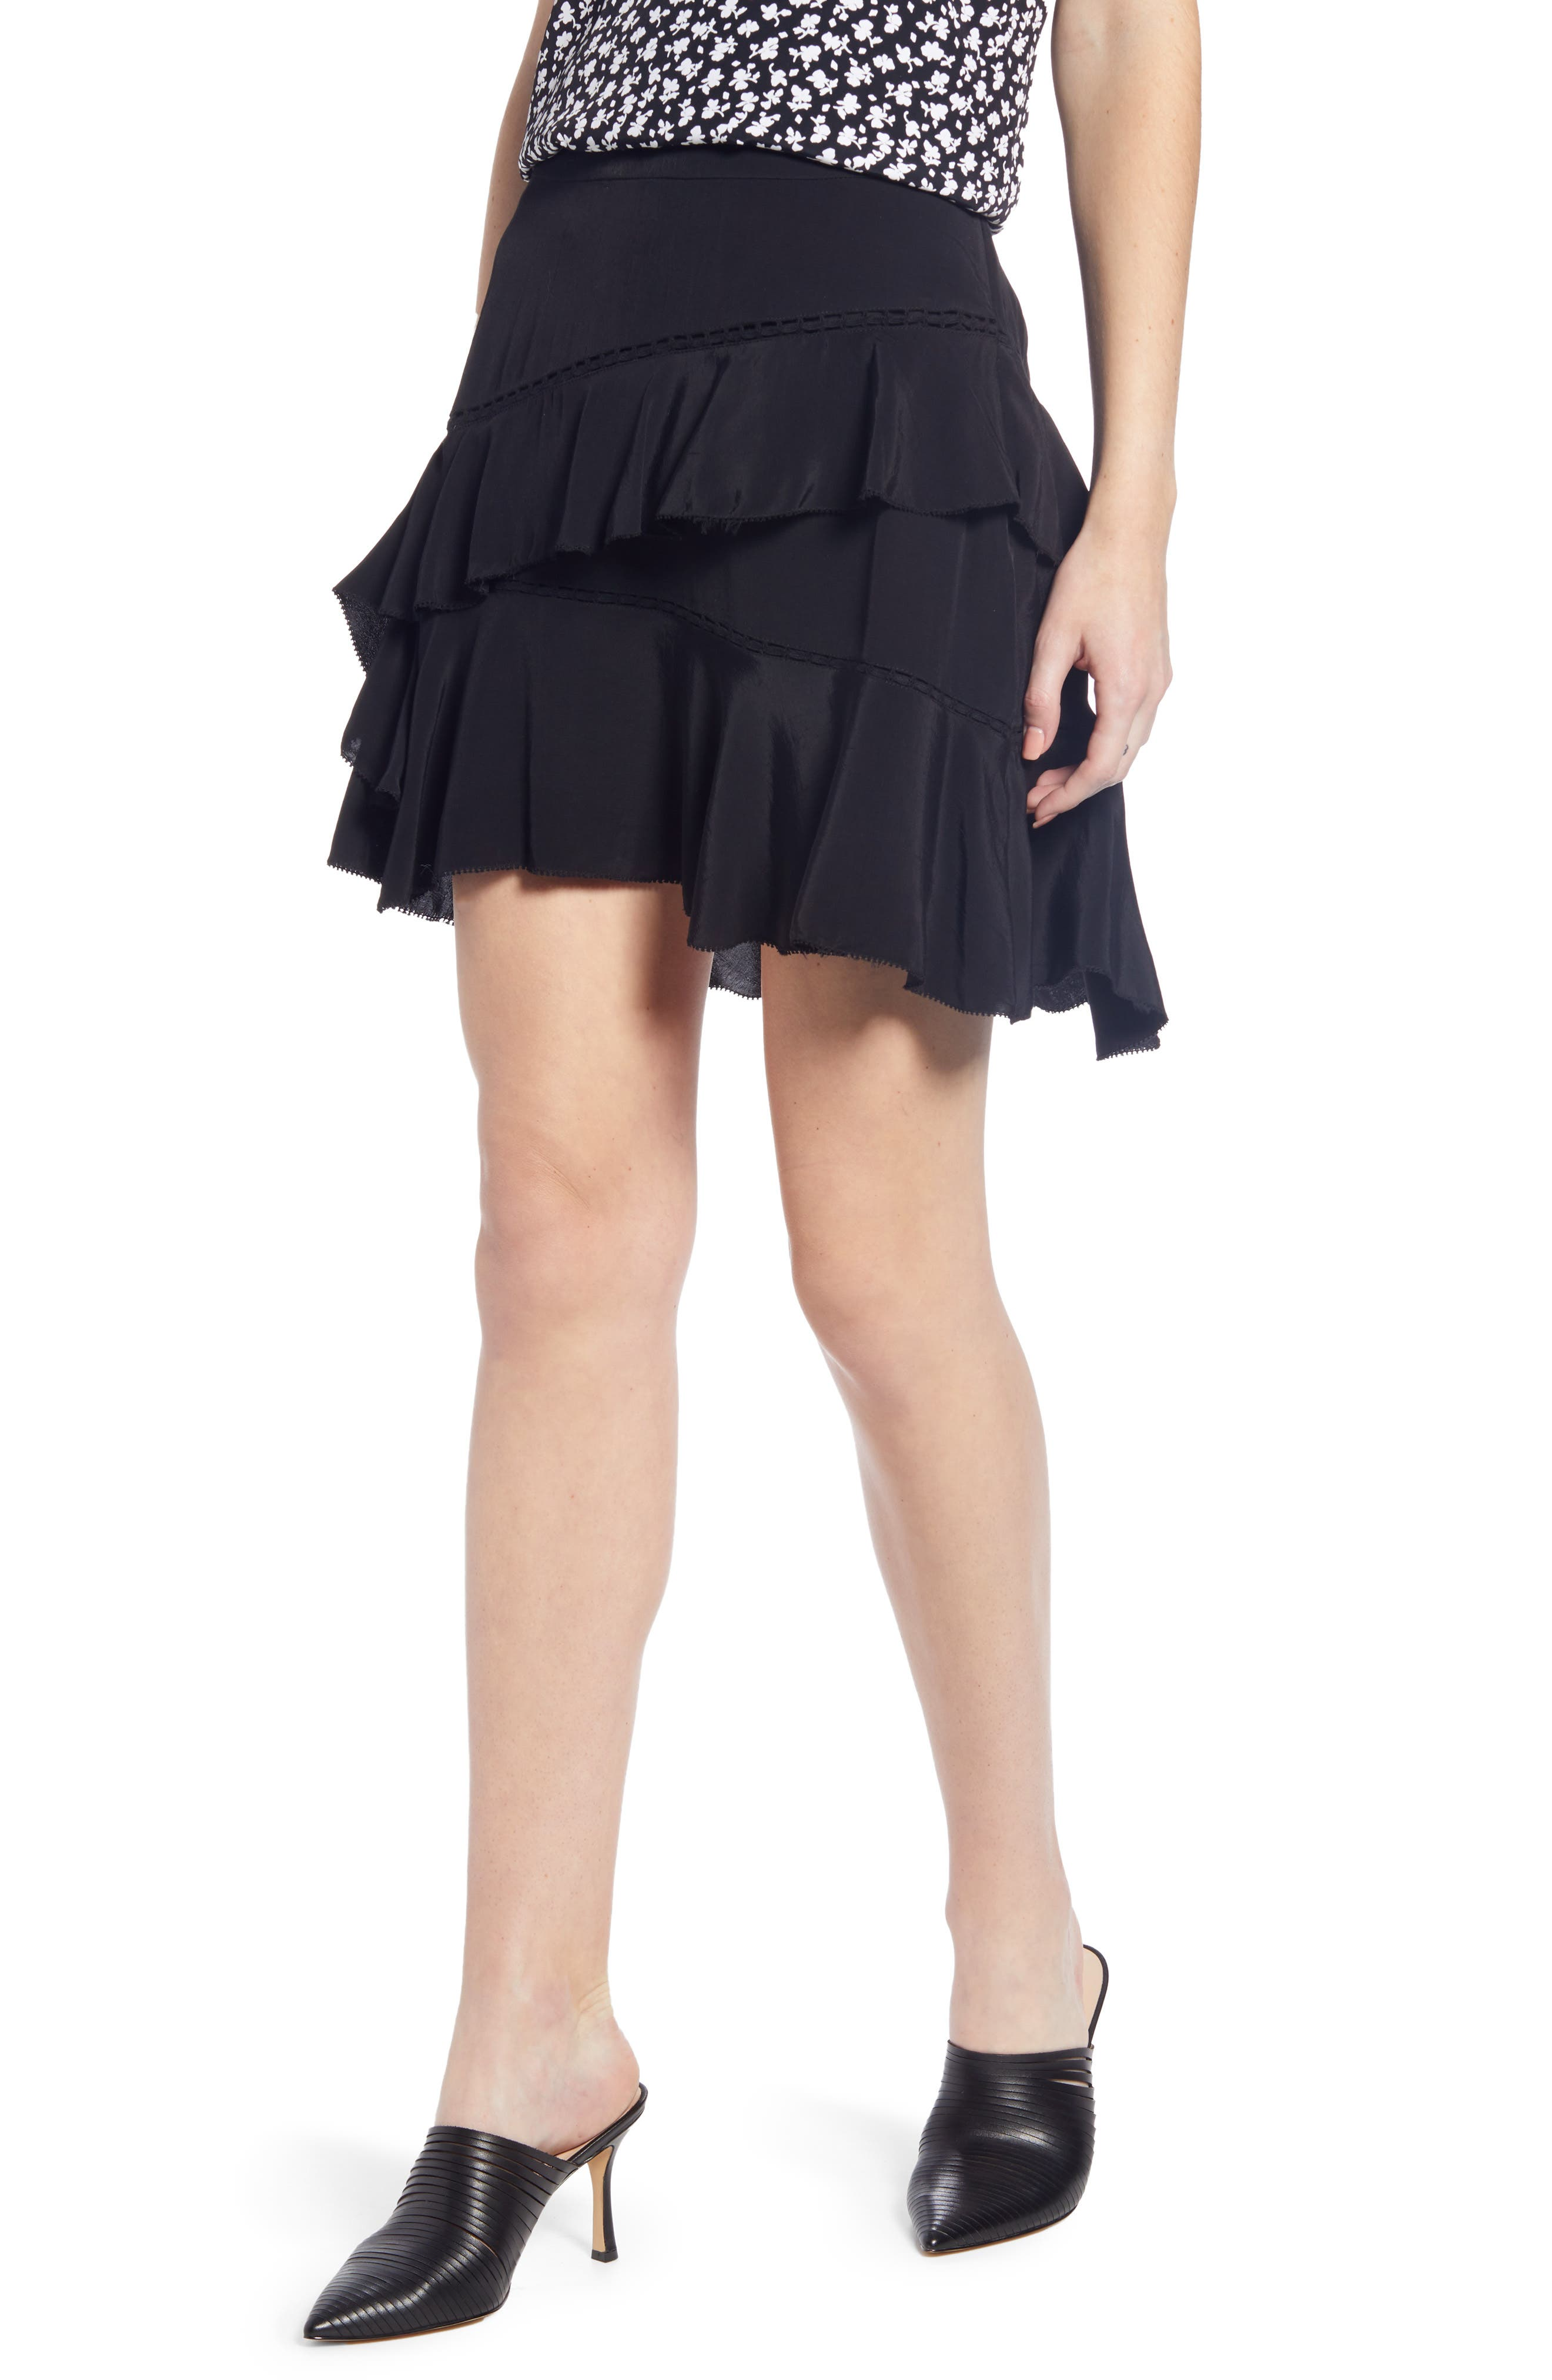 SOMETHING NAVY Tiered Ruffle High/Low Miniskirt, Main, color, BLACK